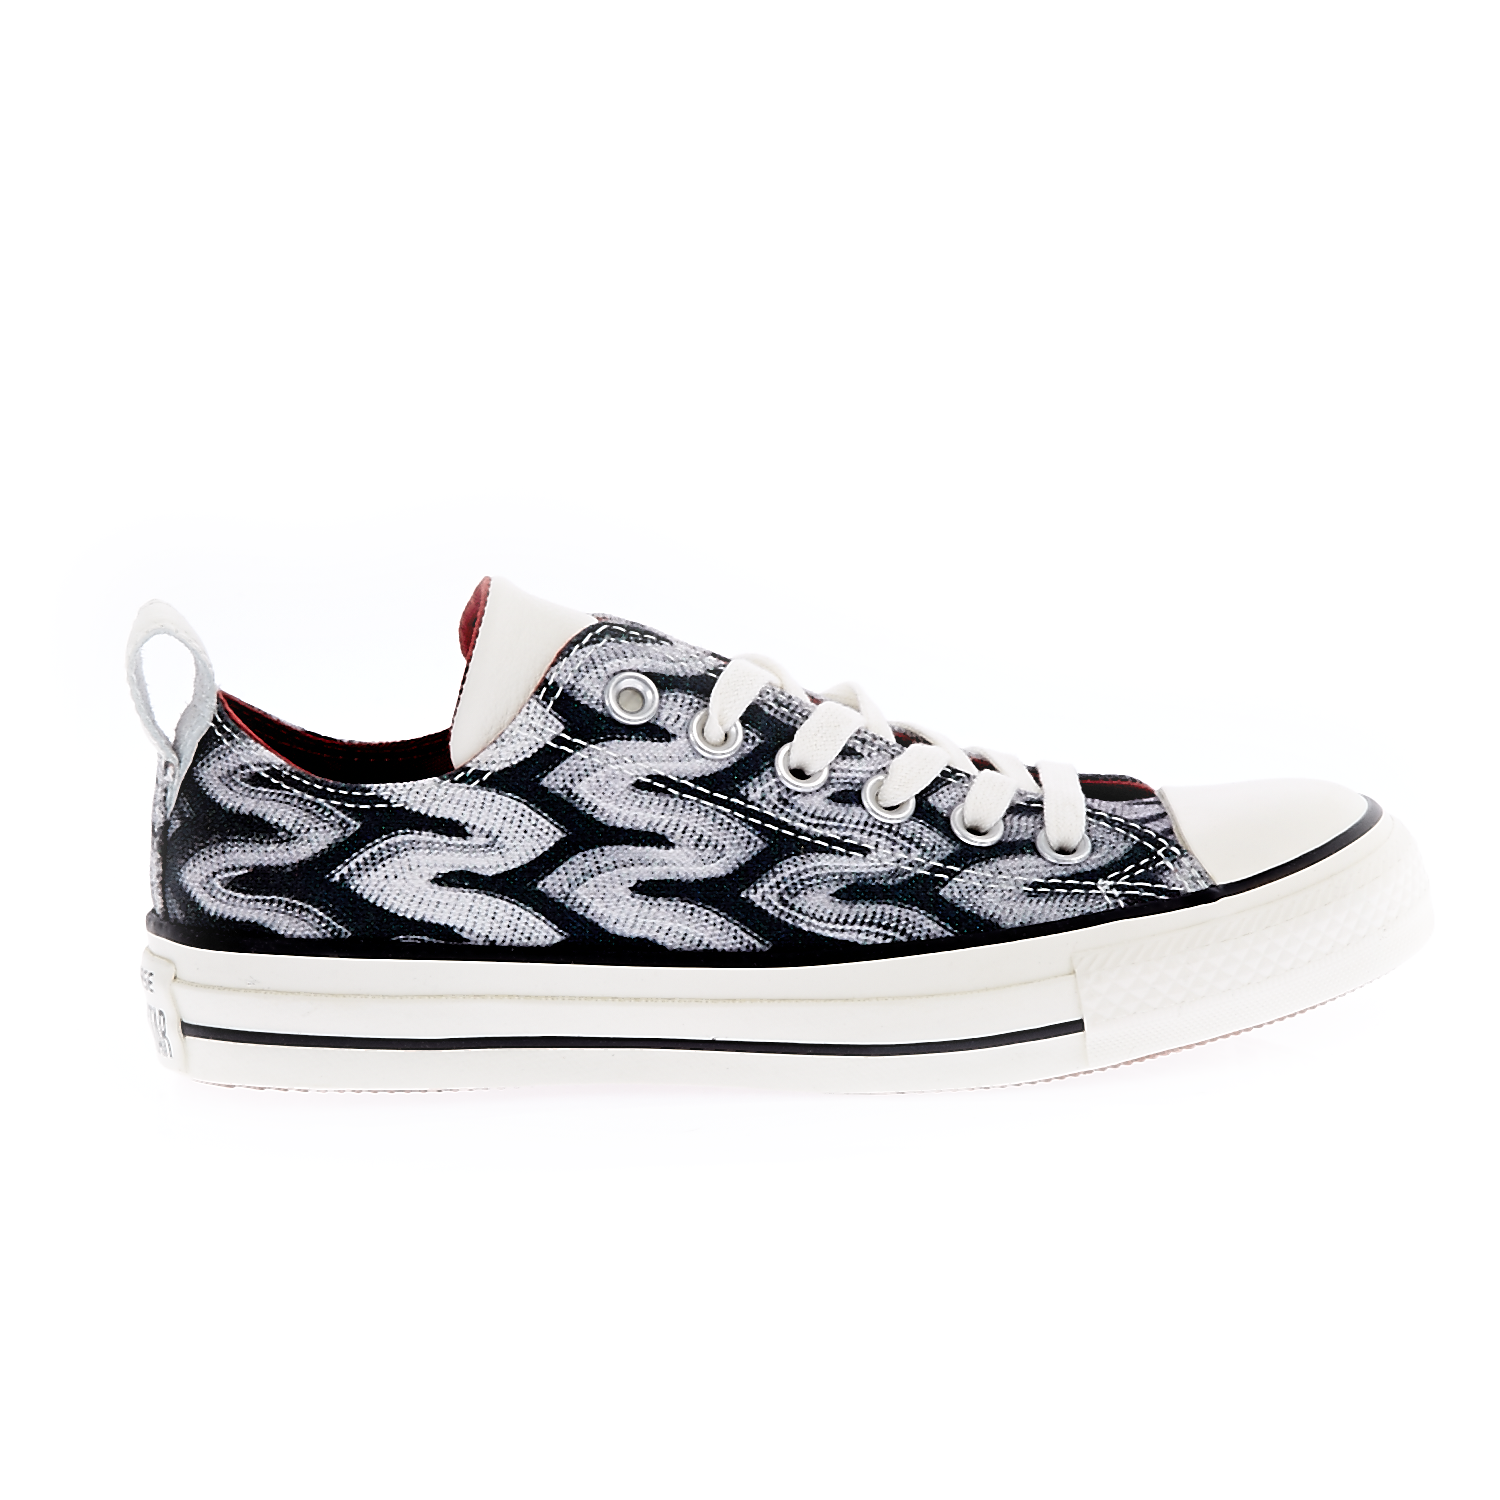 CONVERSE – Unisex παπούτσια Chuck Taylor All Star Ox μαύρα-λευκά